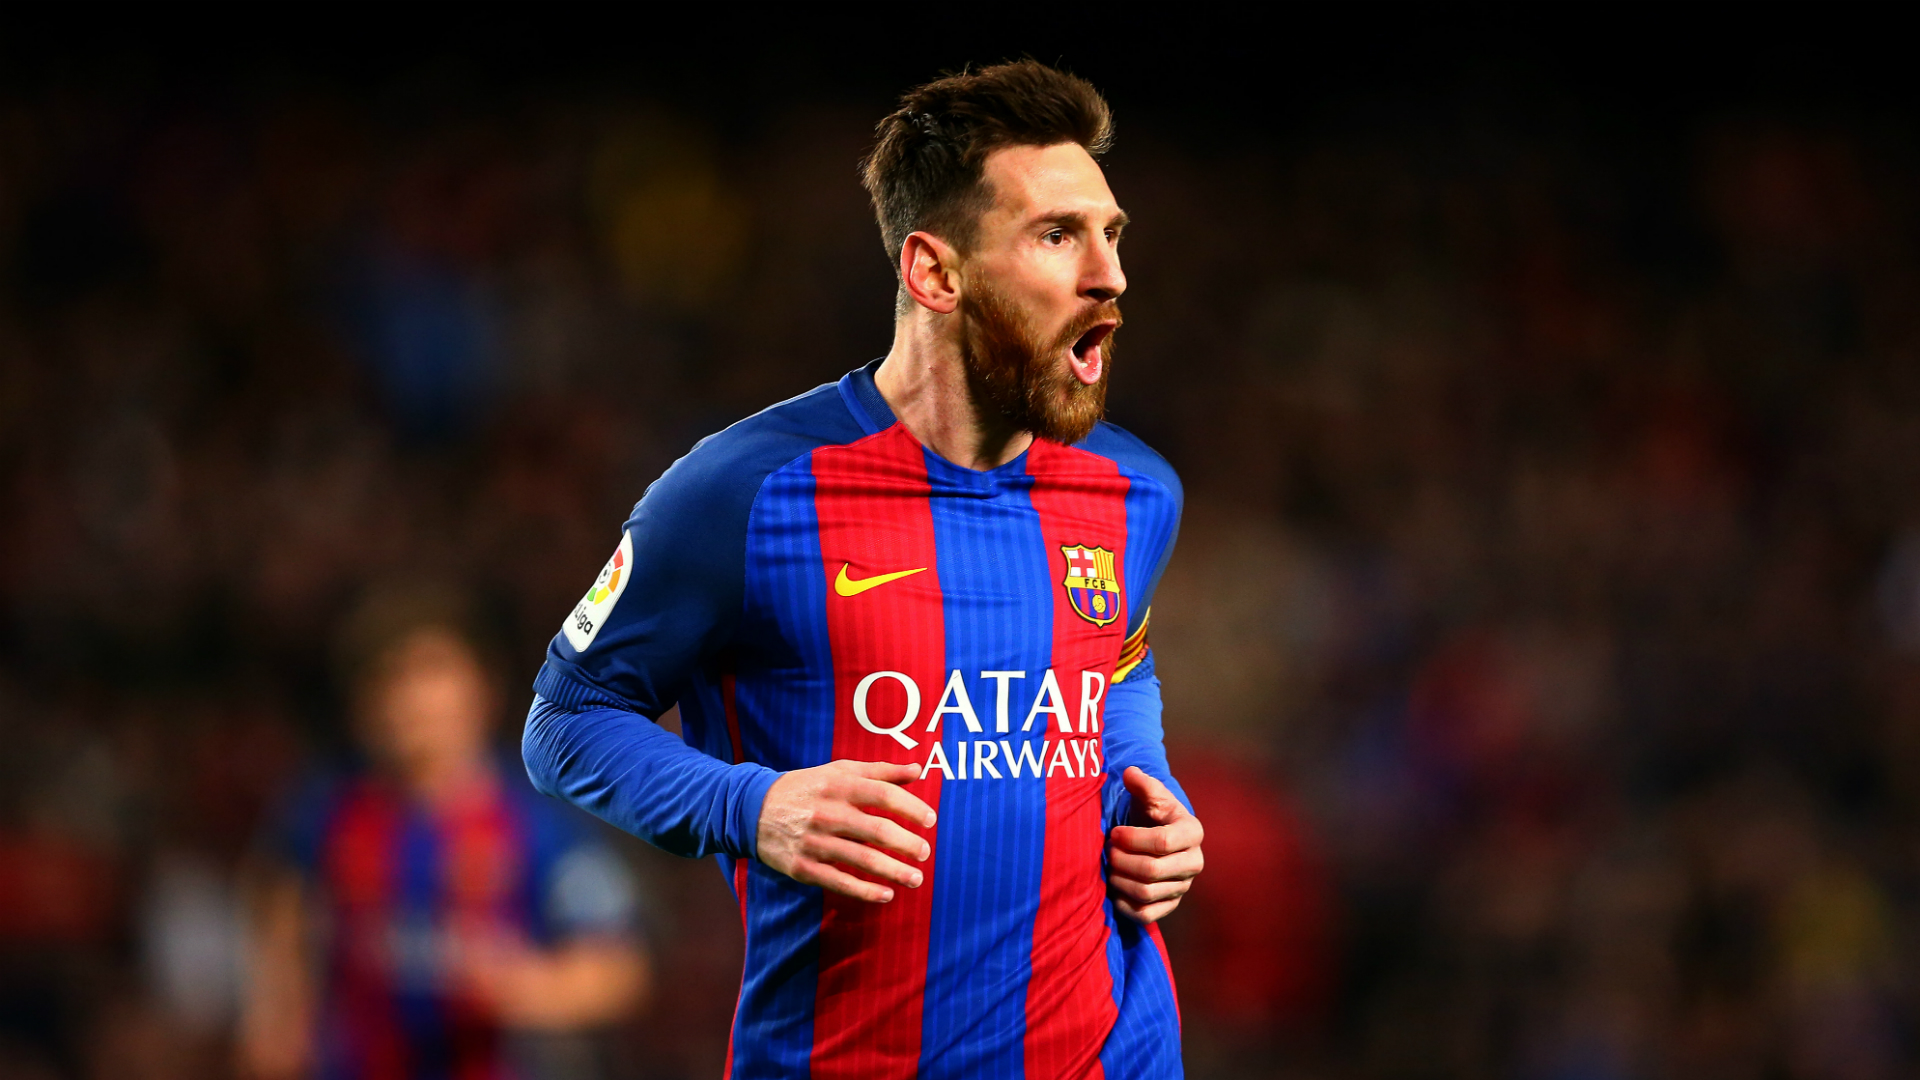 lionel messi reaches 500 goals for barcelona with dramatic